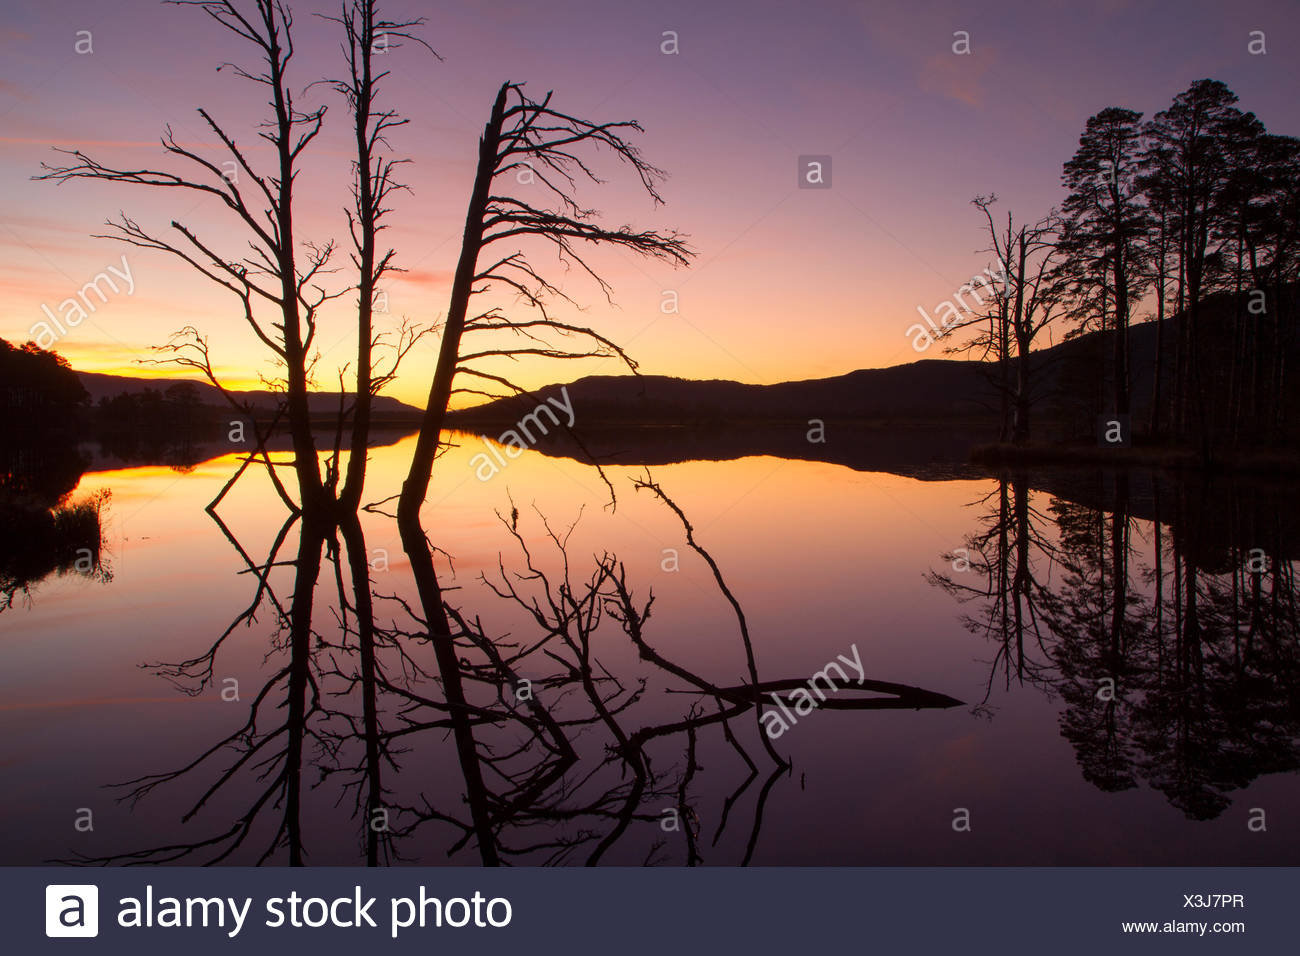 Scots pines (Pinus sylvestris) silhouetted at dusk, Loch Mallachie, Cairngorms National Park, Scotland, UK, - Stock Image